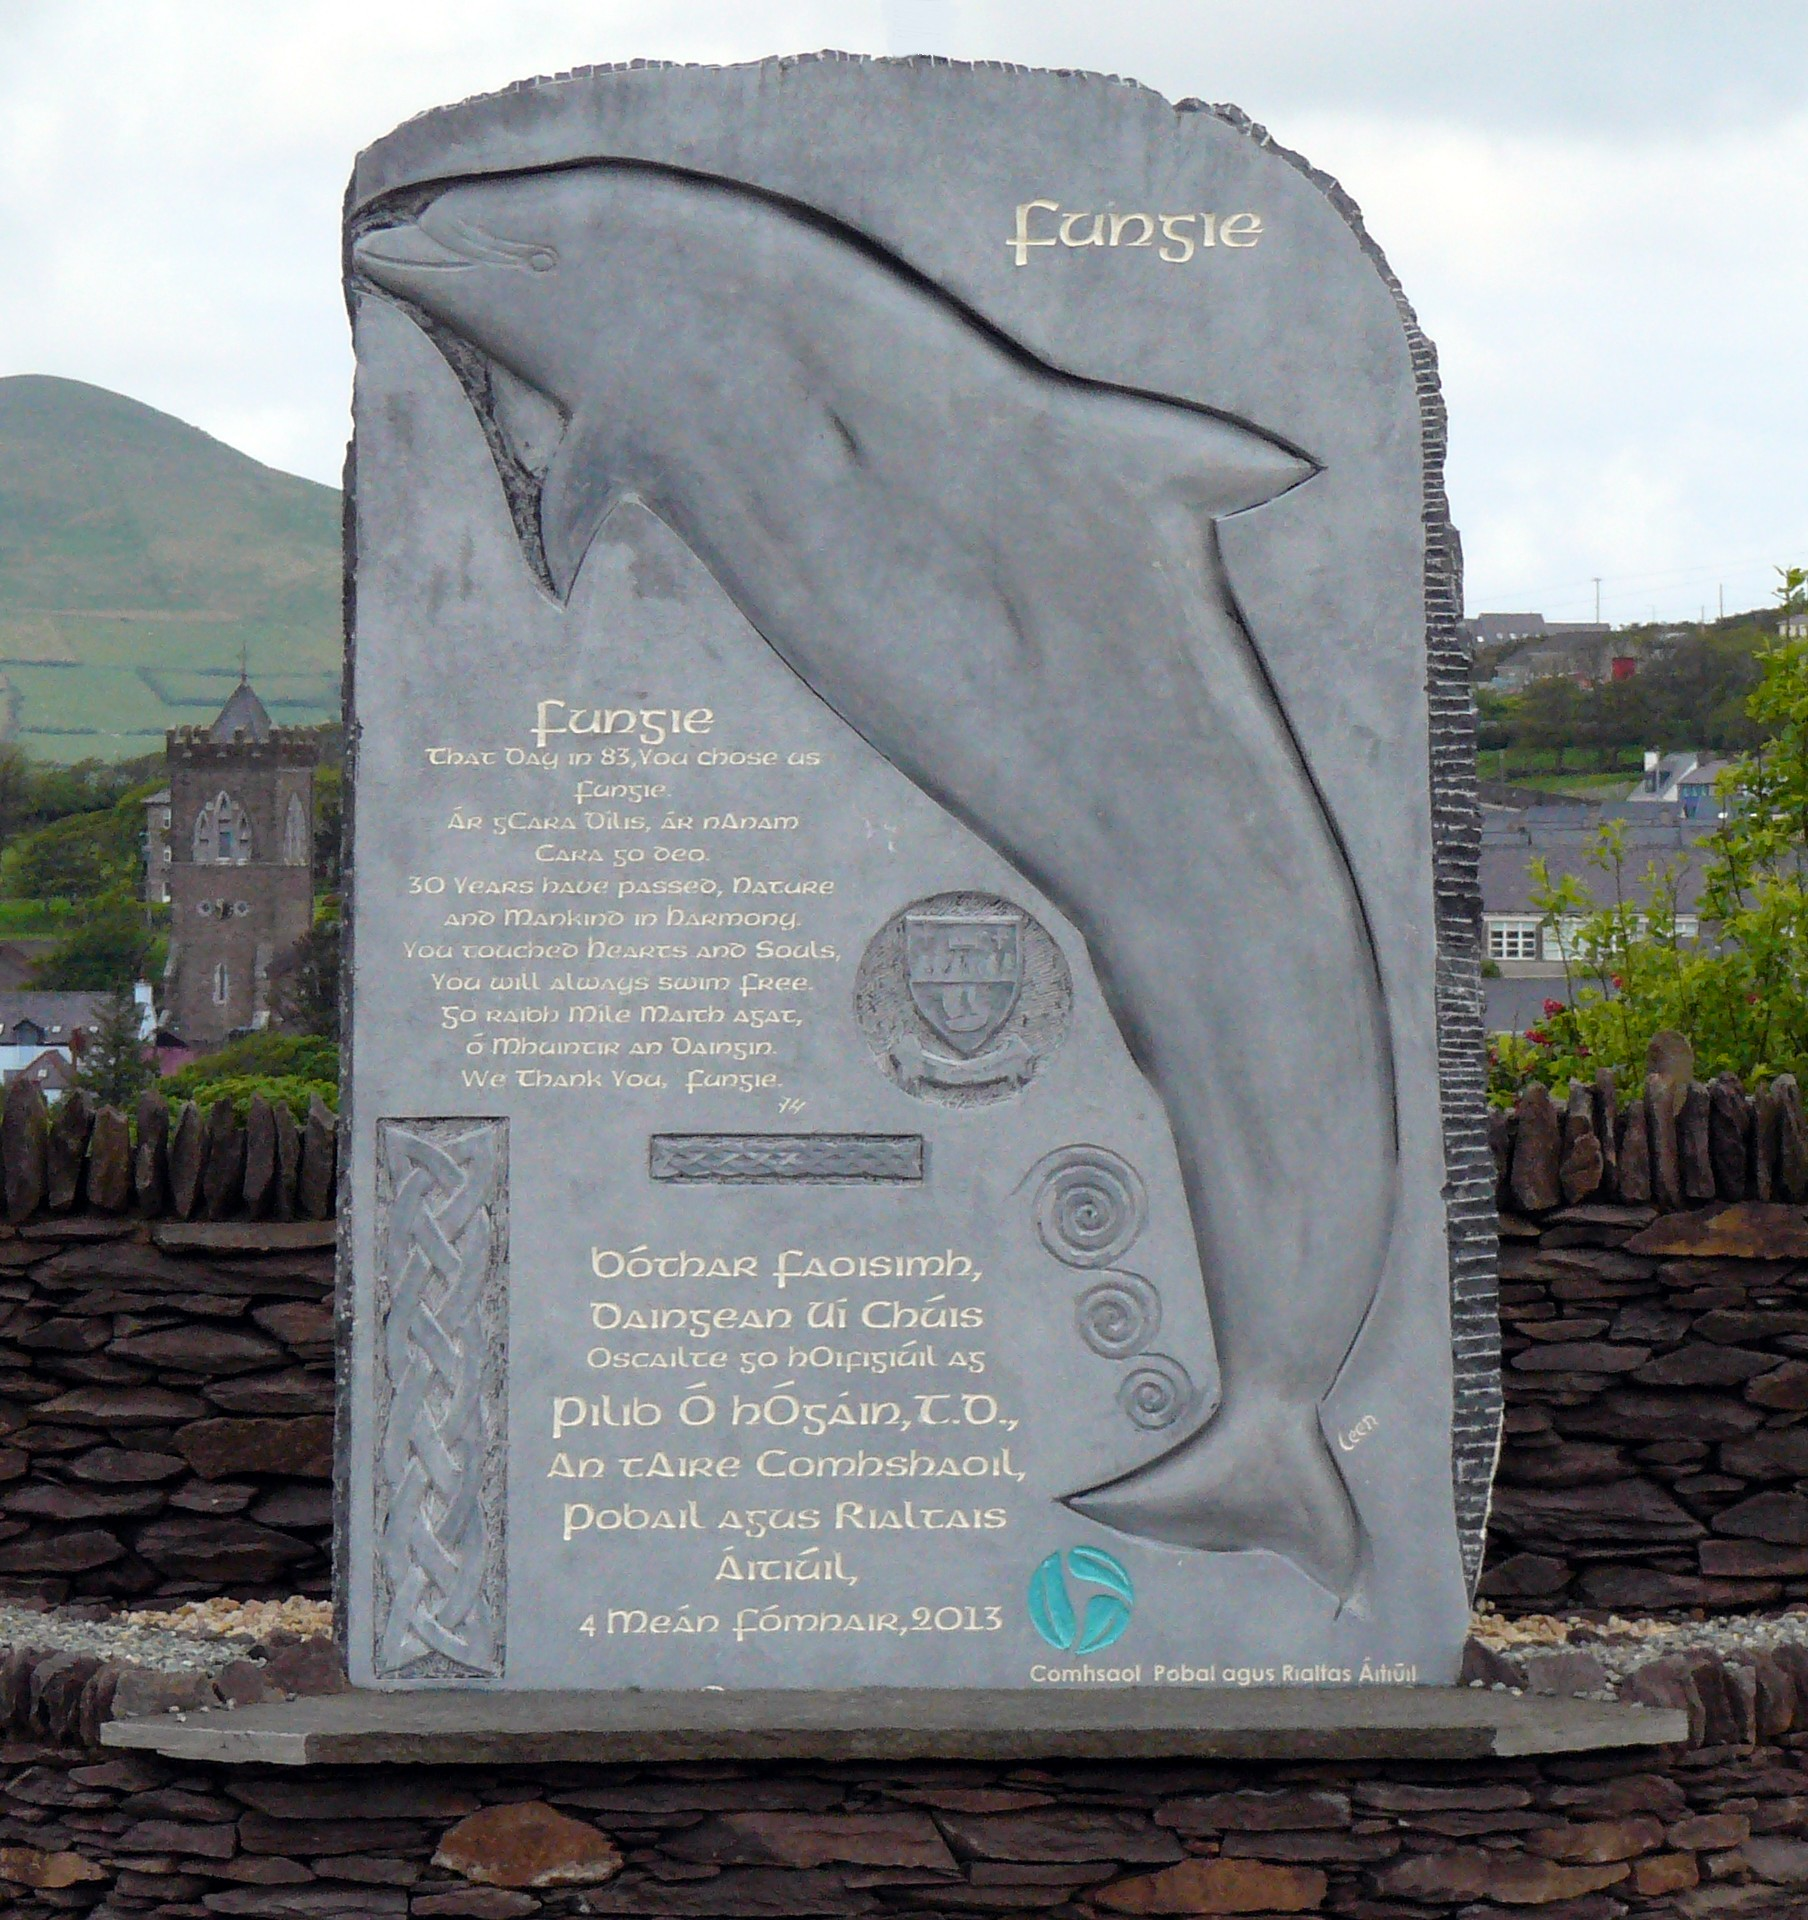 File Dolphin Fungie Memorial Dingle Co Kerry Ireland Jpg Wikimedia Commons Dingle boat tours to see fungie! https commons wikimedia org wiki file dolphin fungie memorial dingle co kerry ireland jpg